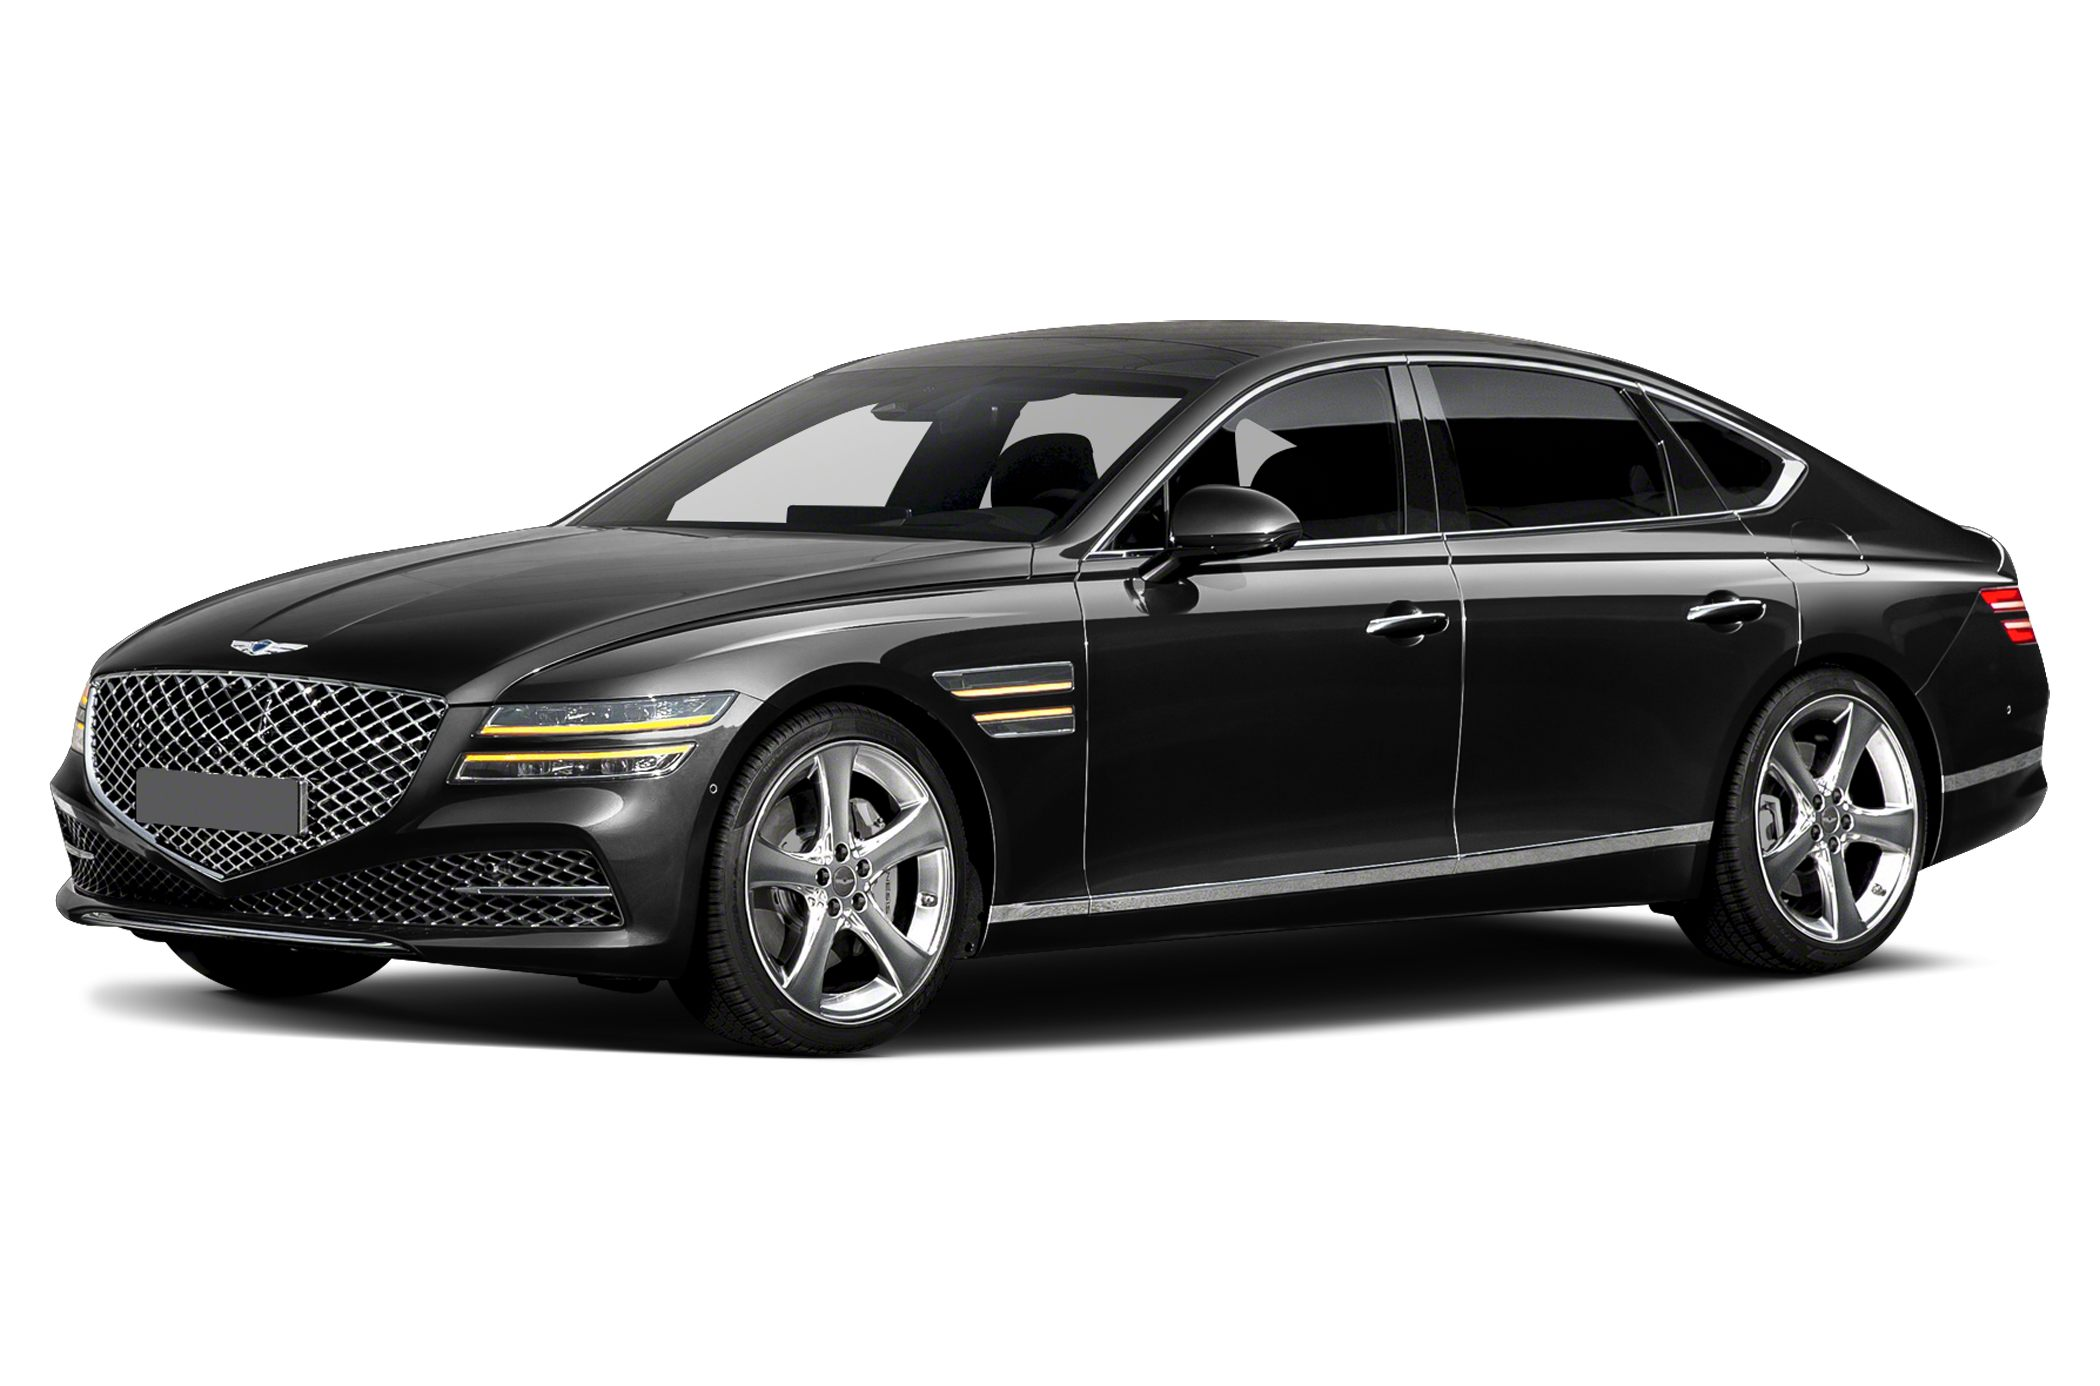 2021 Genesis G80 3 5t 4dr All Wheel Drive Sedan Specs And Prices